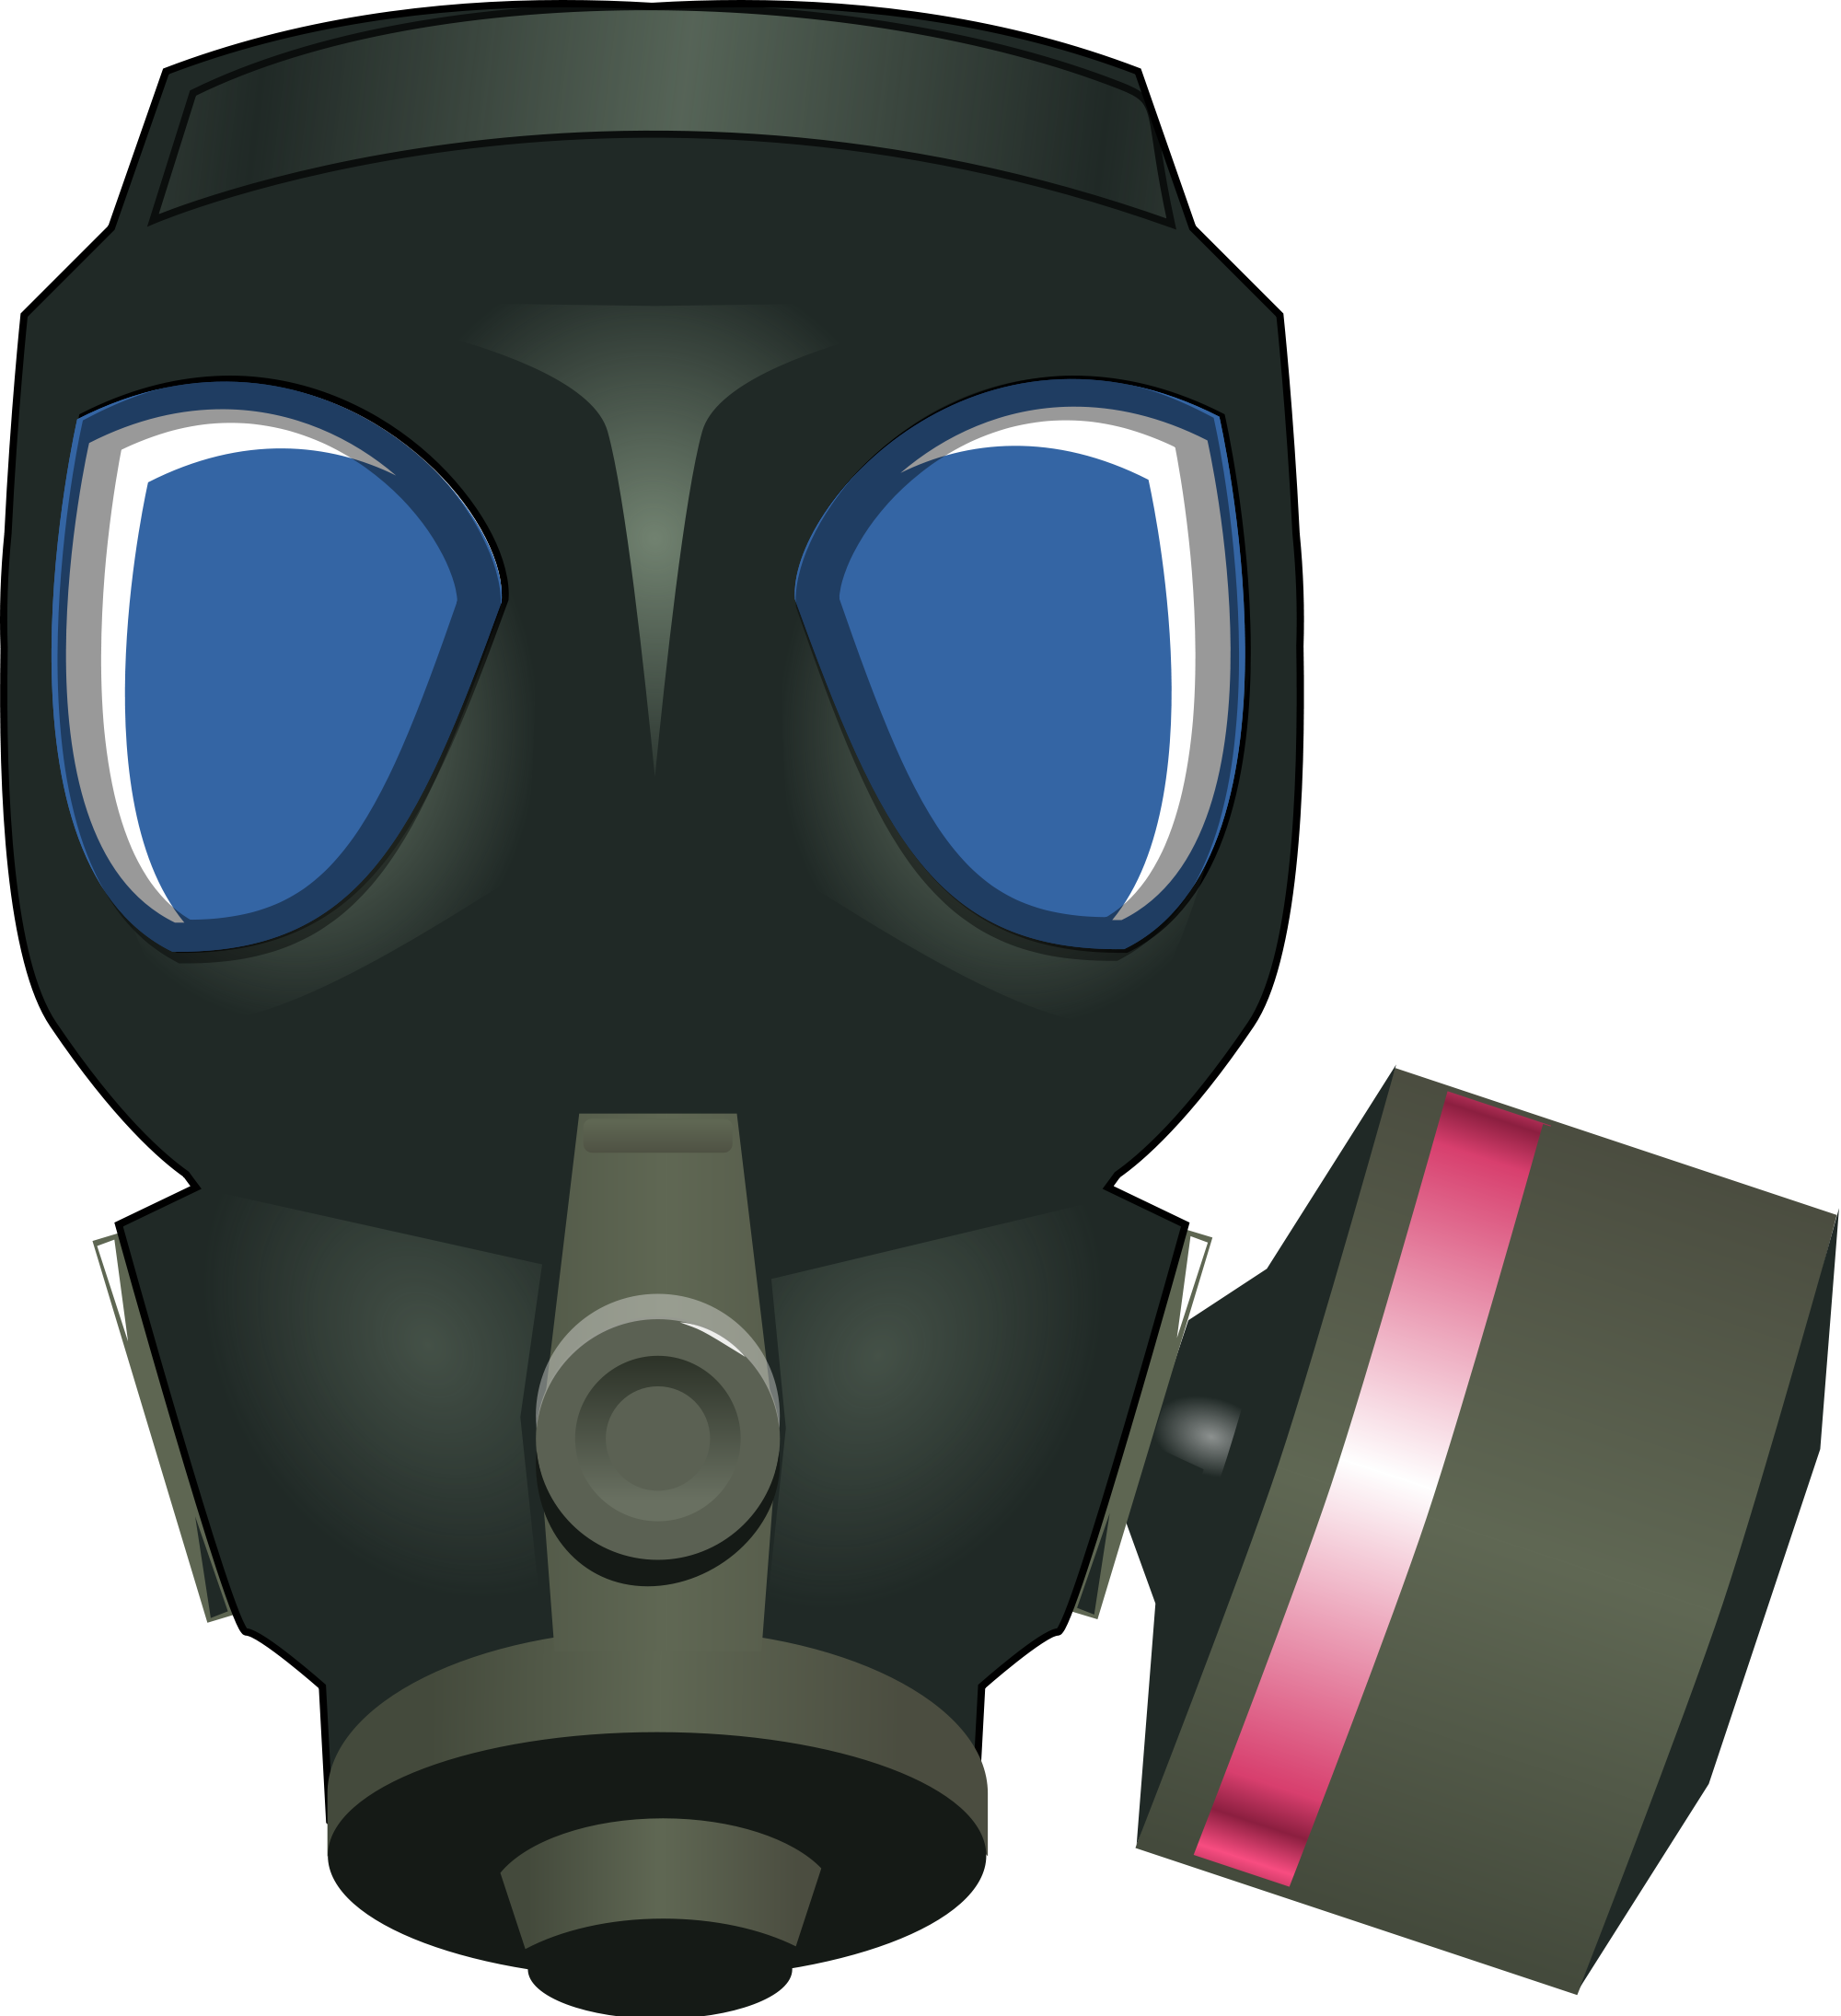 Gas Mask clipart radioactive Wikimedia Commons File:Gas svg mask